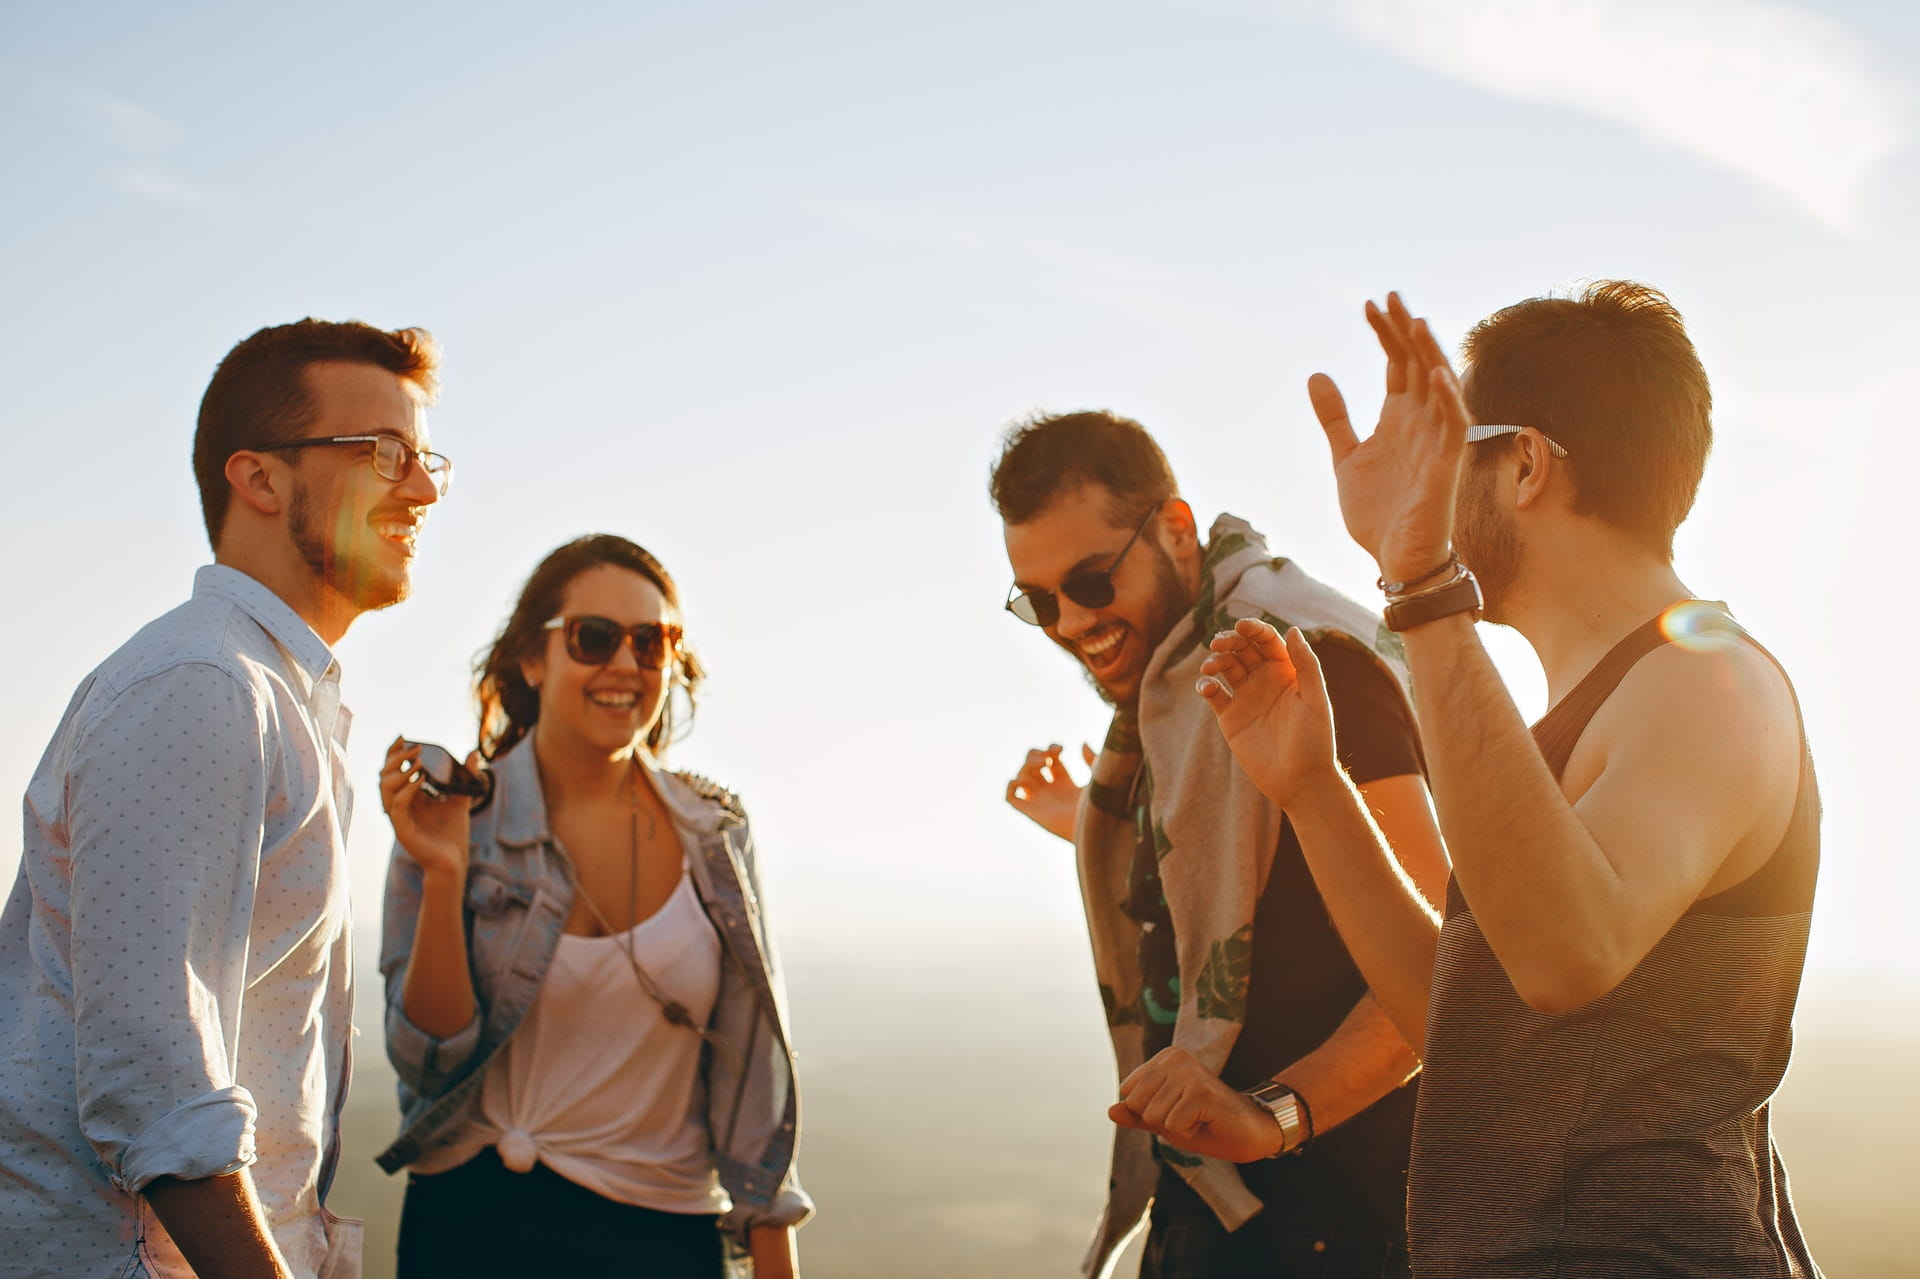 group of people having fun together